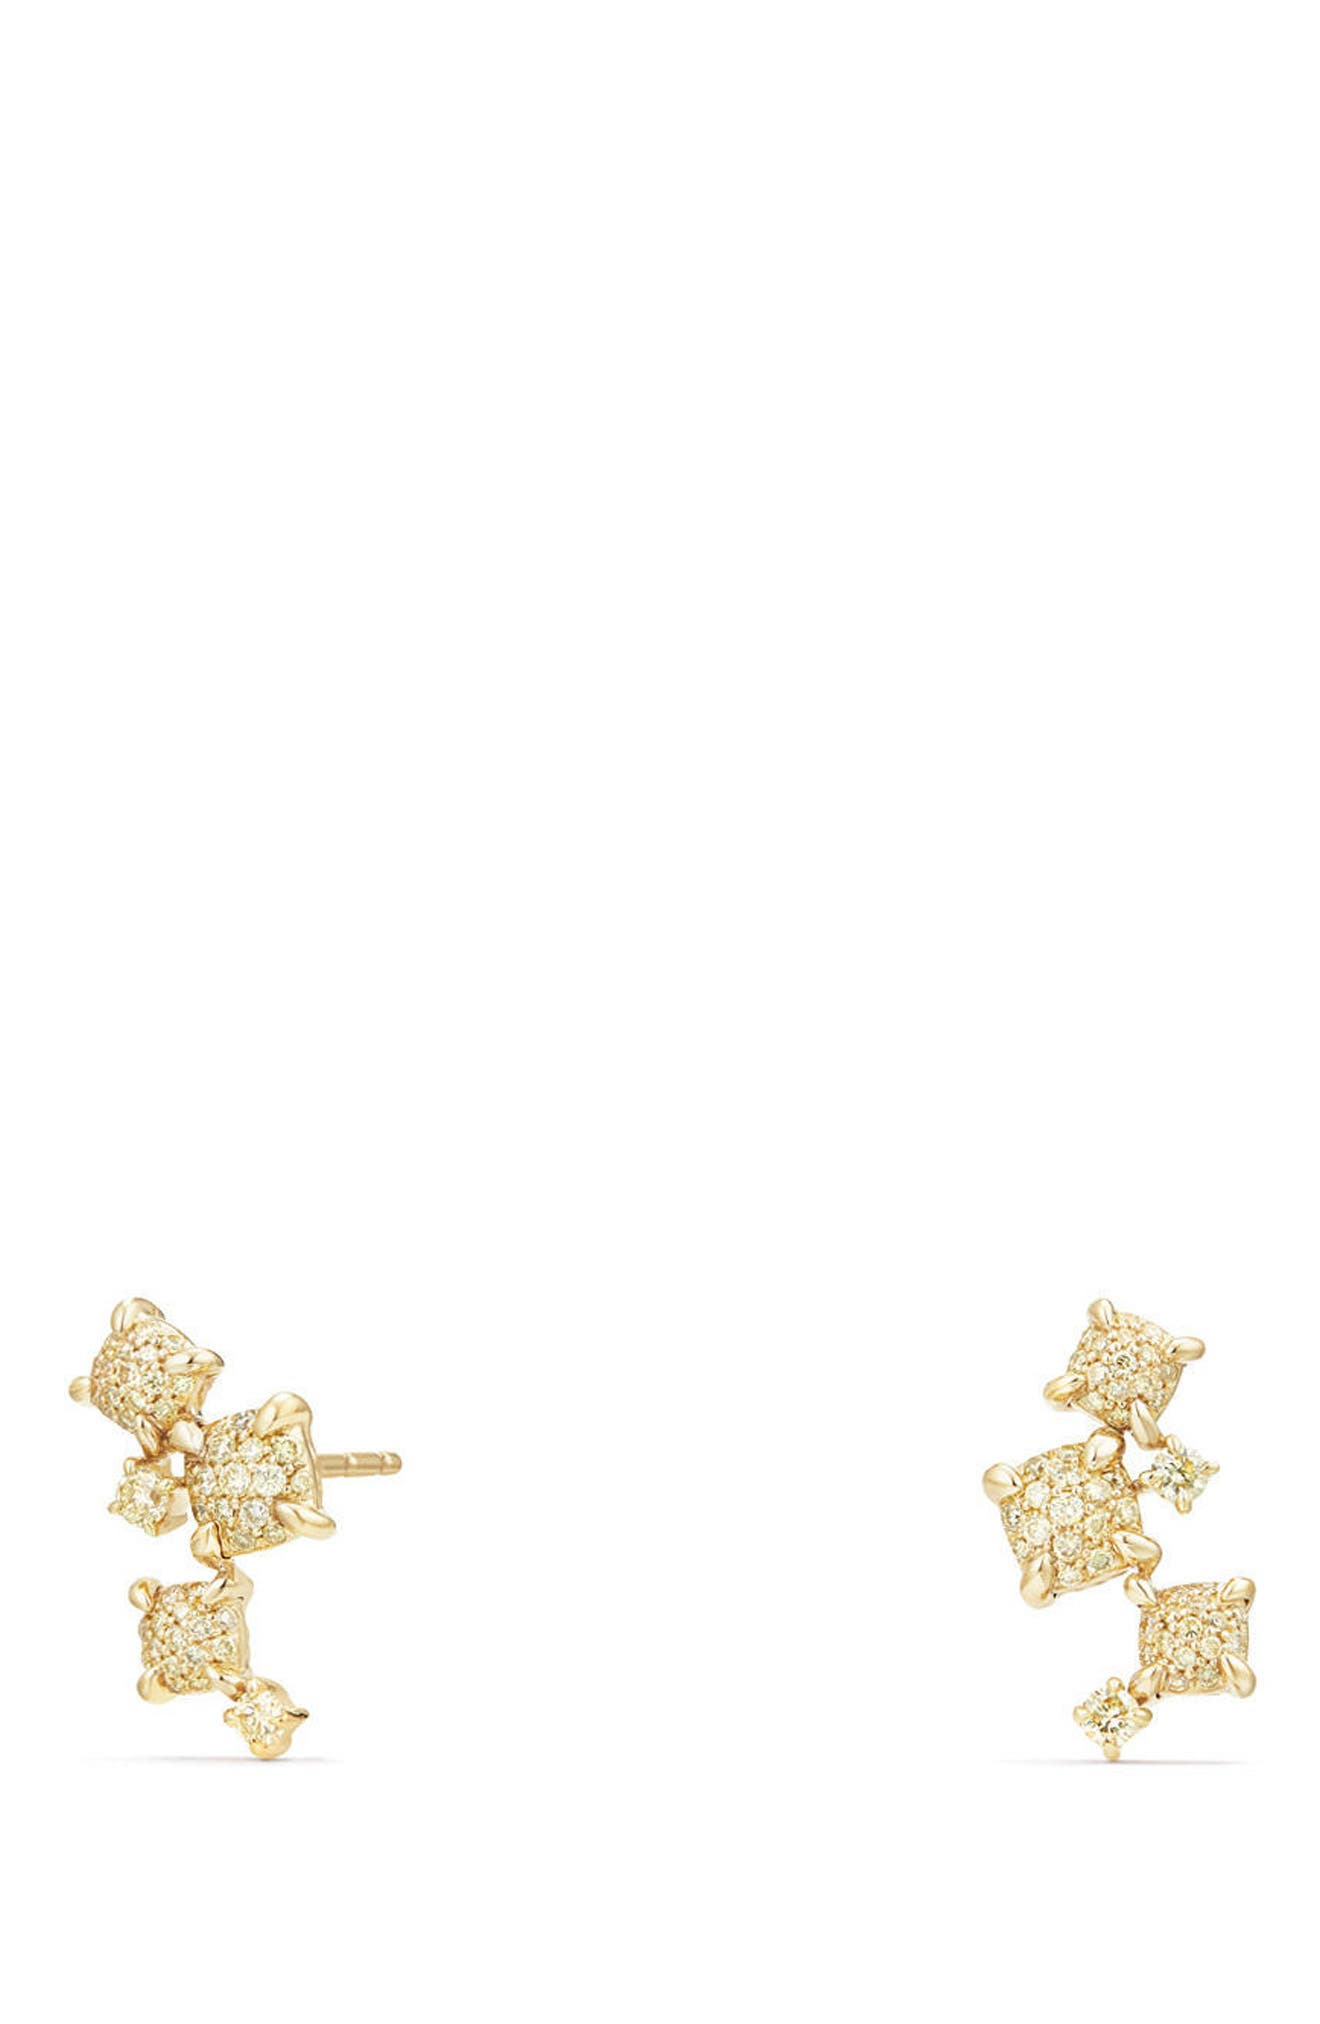 David Yurman Petite Châtelaine Climber Earrings in 18K Gold with Diamonds